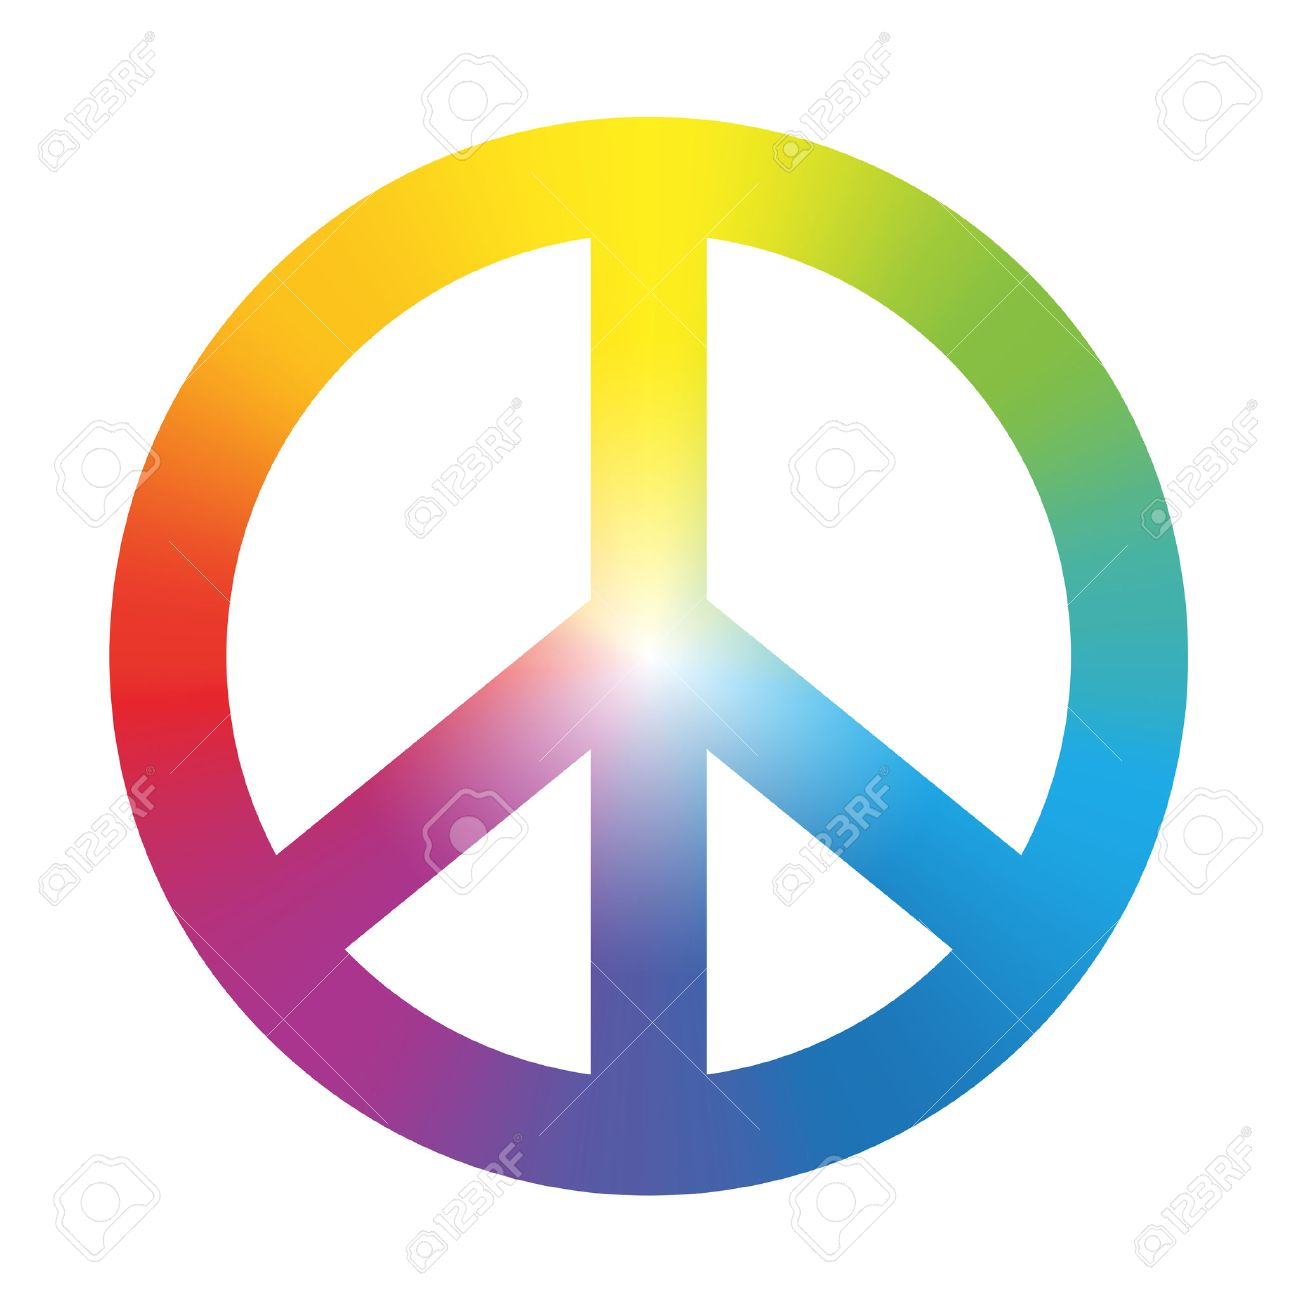 Free printable coloring pages peace sign - Peace Sign Peace Symbol With Circular Rainbow Gradient Coloring Isolated Vector Illustration On White Background